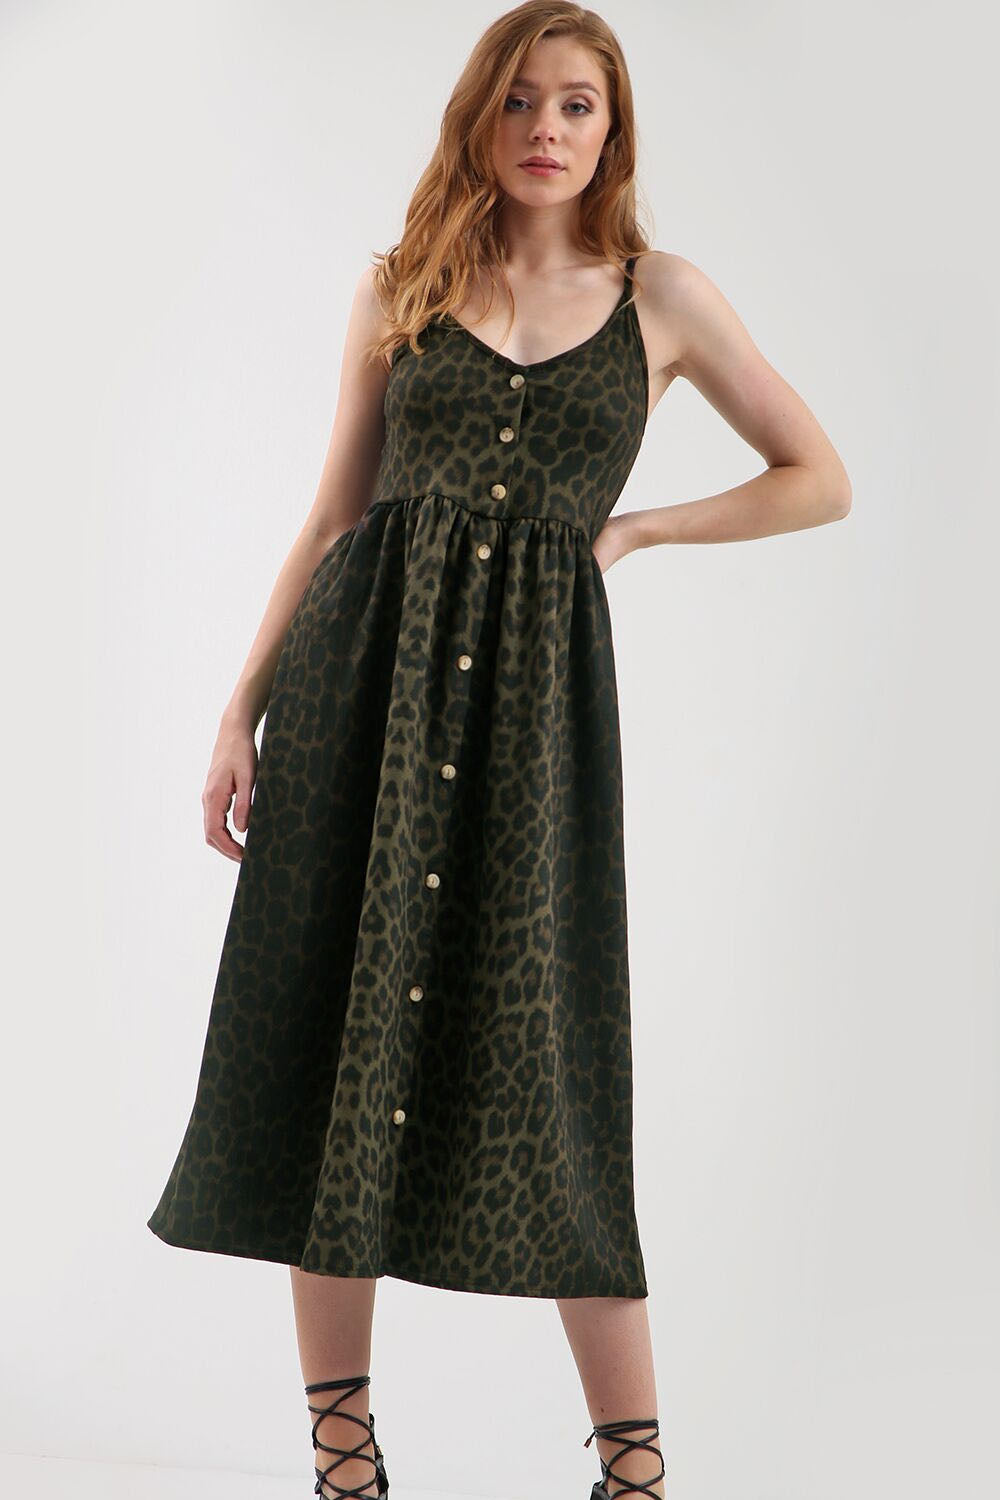 Breana Strappy Leopard Print Midi Swing Dress - bejealous-com